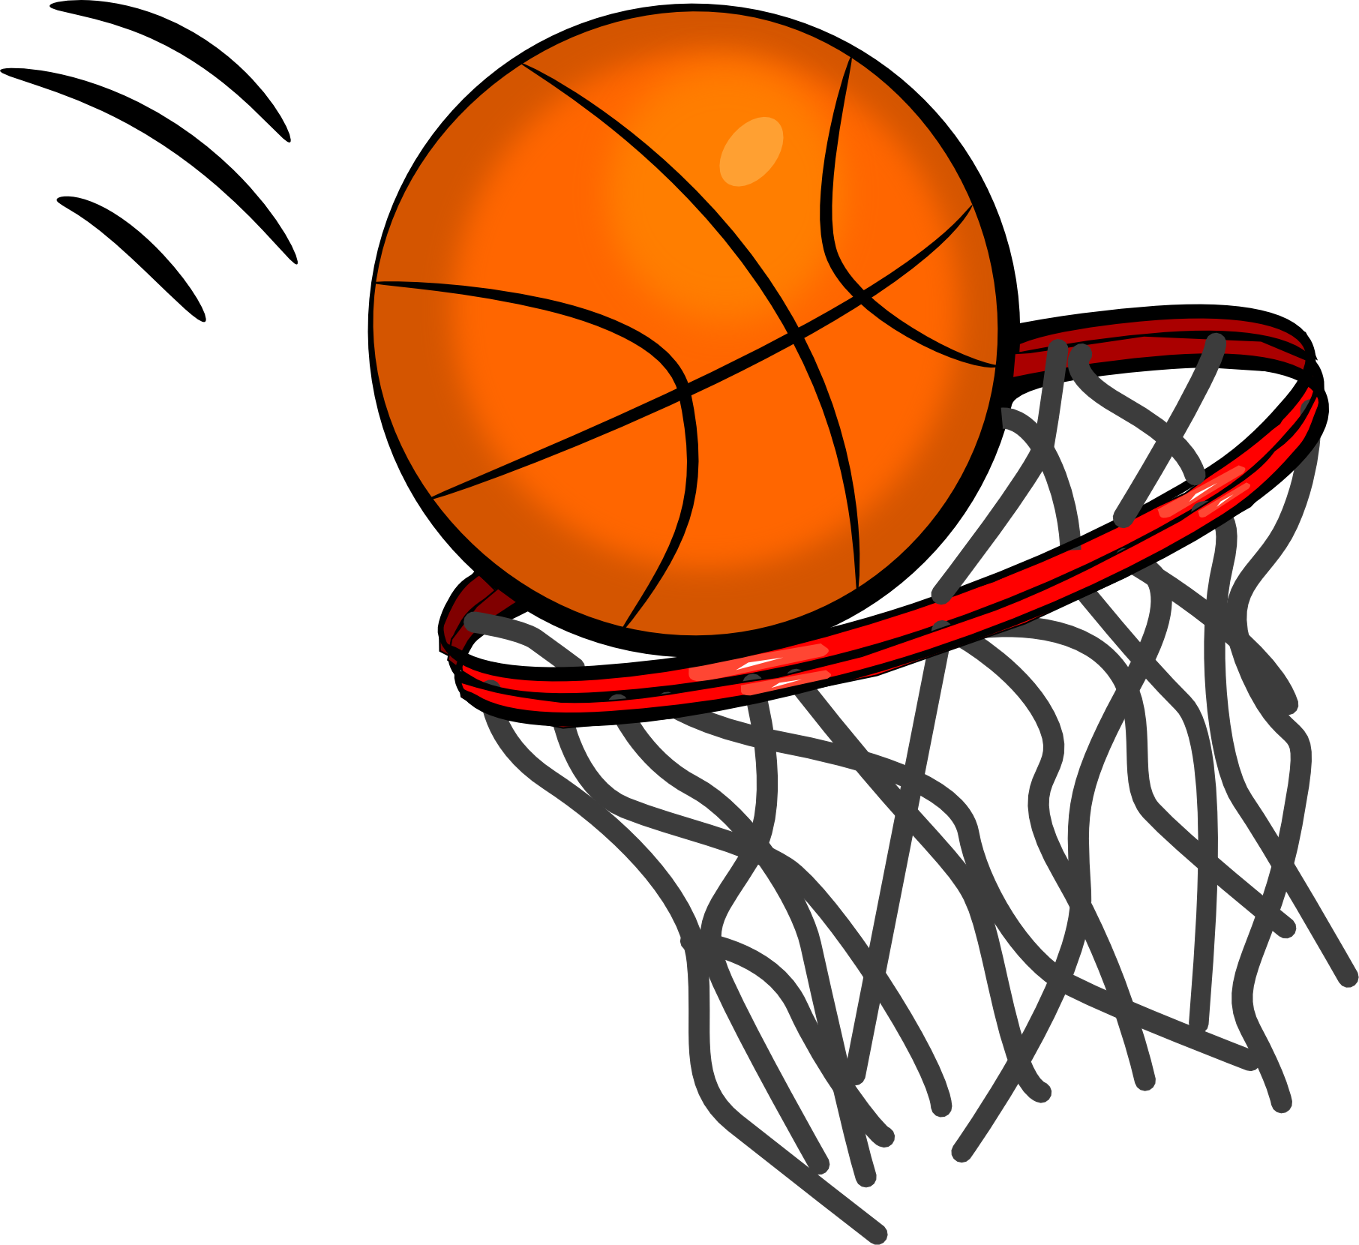 Transparent clipart basketball graphic transparent stock Free Clear Basketball Cliparts, Download Free Clip Art, Free ... graphic transparent stock